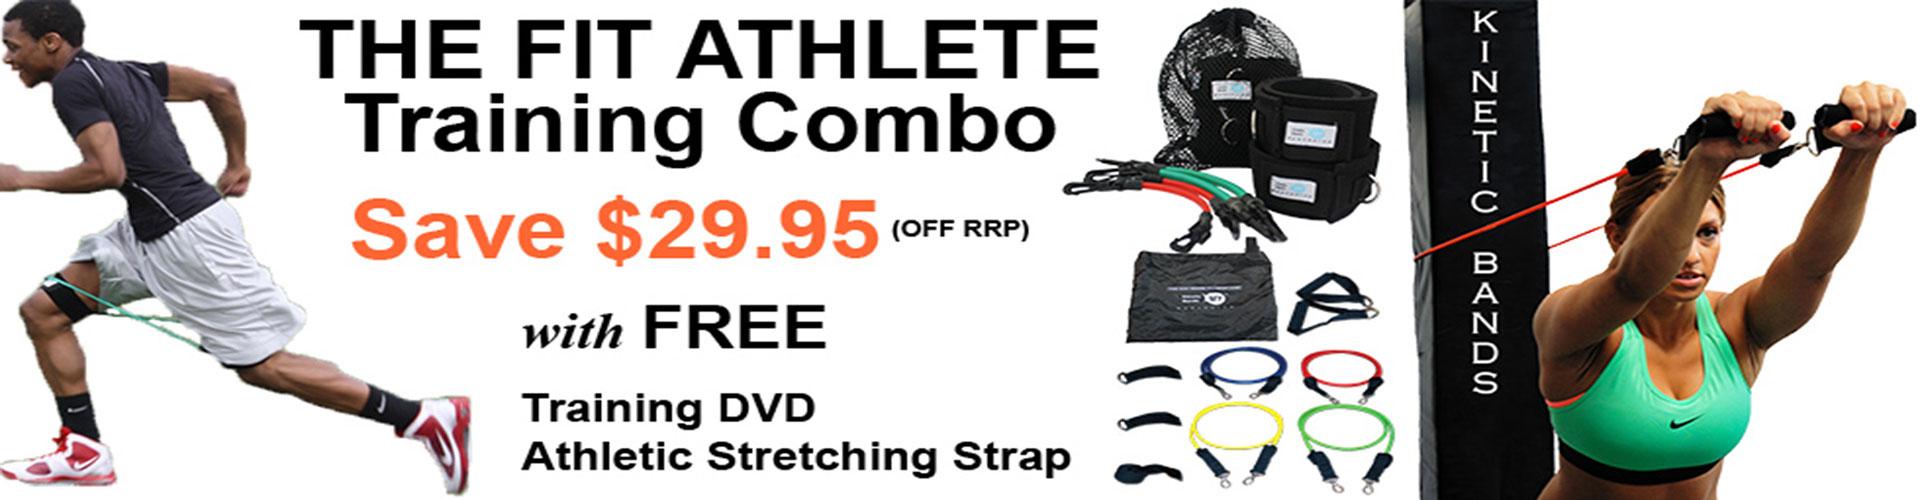 Save $29.95 when you purchase The Fit Athlete Training Combo, a complete gym in a bag. This set includes a set of Kinetic Bands (resistance training leg bands), KB Upper Body Workout Bands, Speed and Agility Training DVD, Athletic Stretching Strap, and a